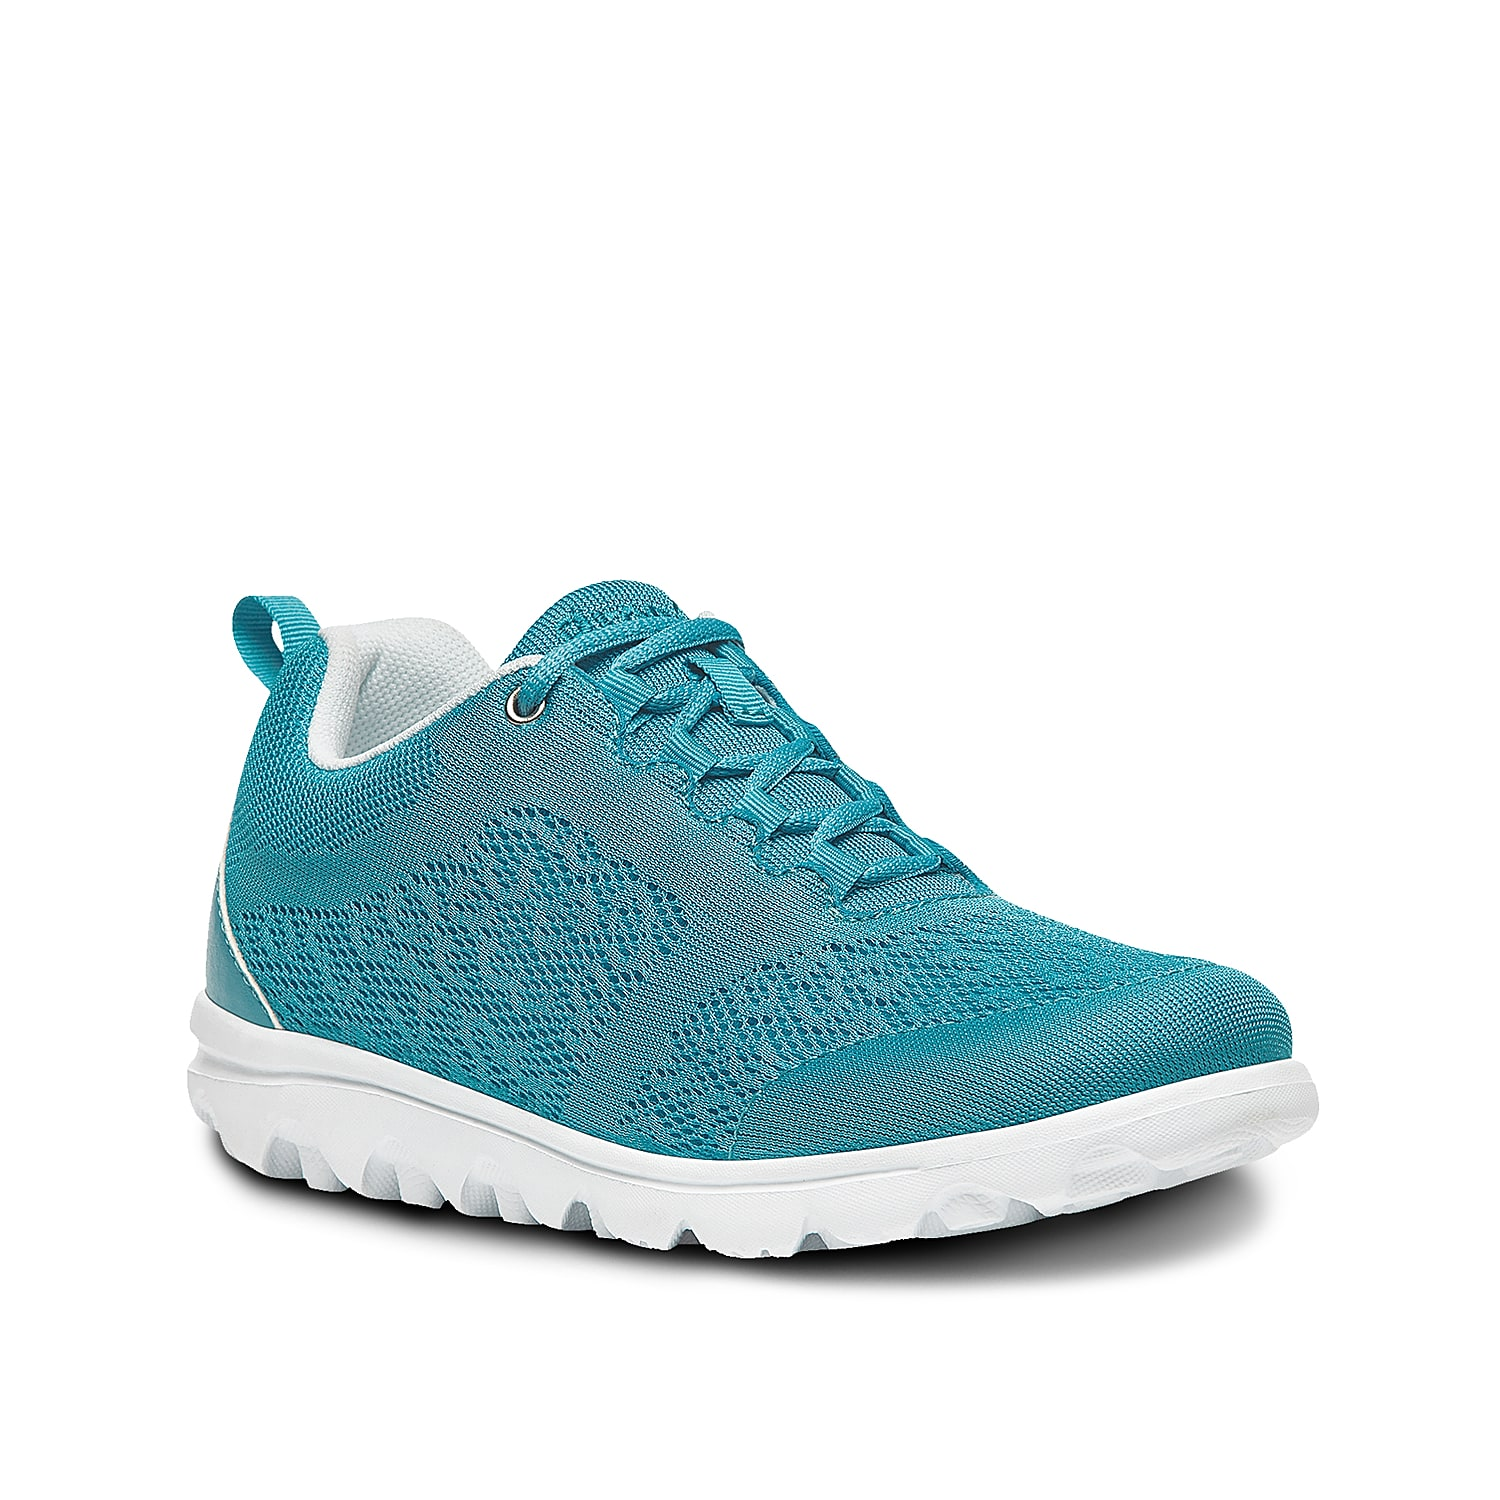 The lightweight TravelTek™ outsole only available from Propet and ready for your active lifestyle. This flexible shoe is a great travel companion, easy to pack, wear and accessorize.